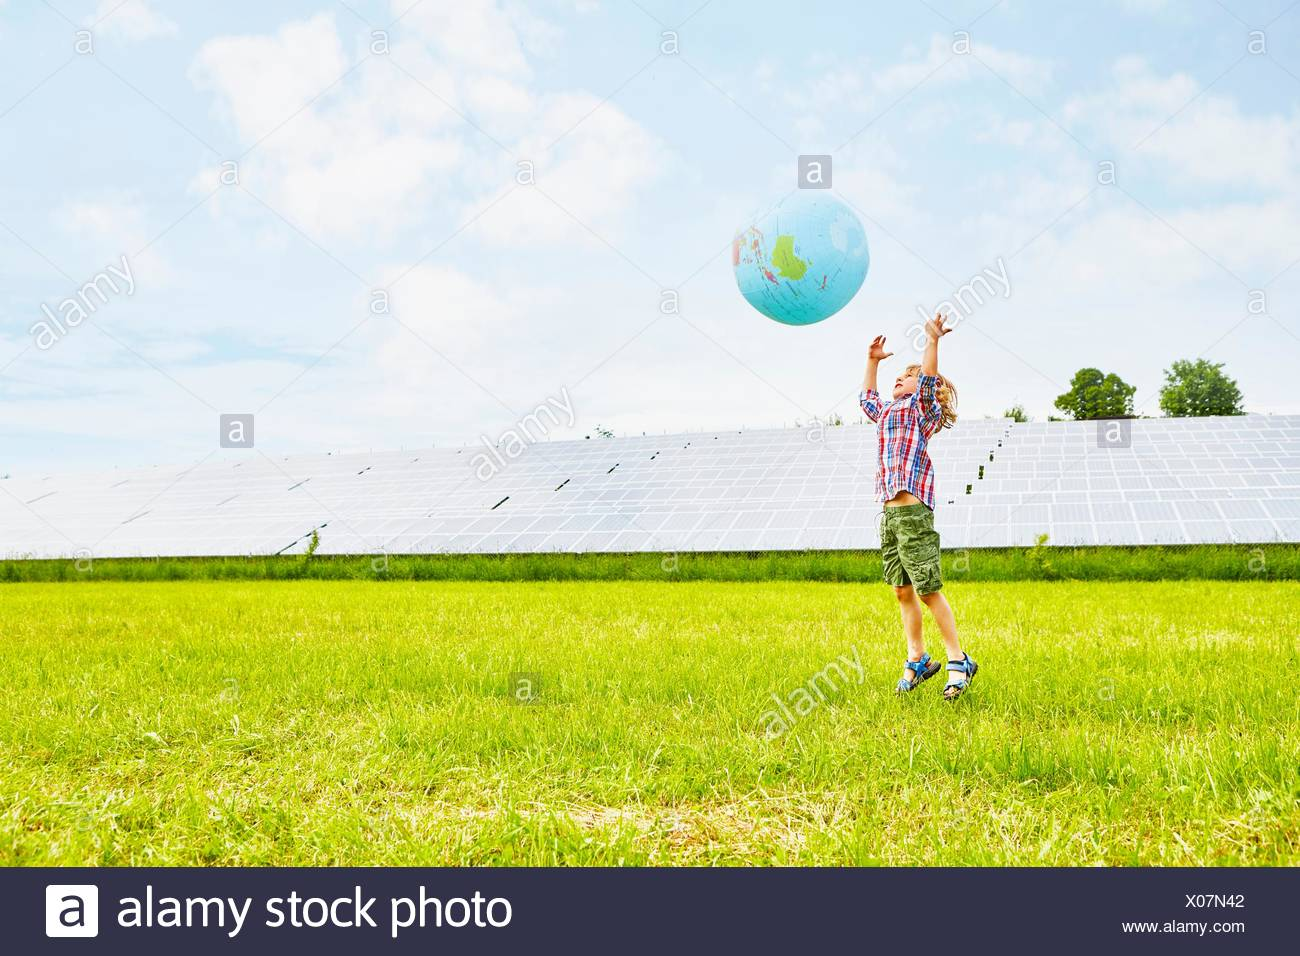 Young boy playing with inflatable ball, on field, next to solar farm - Stock Image